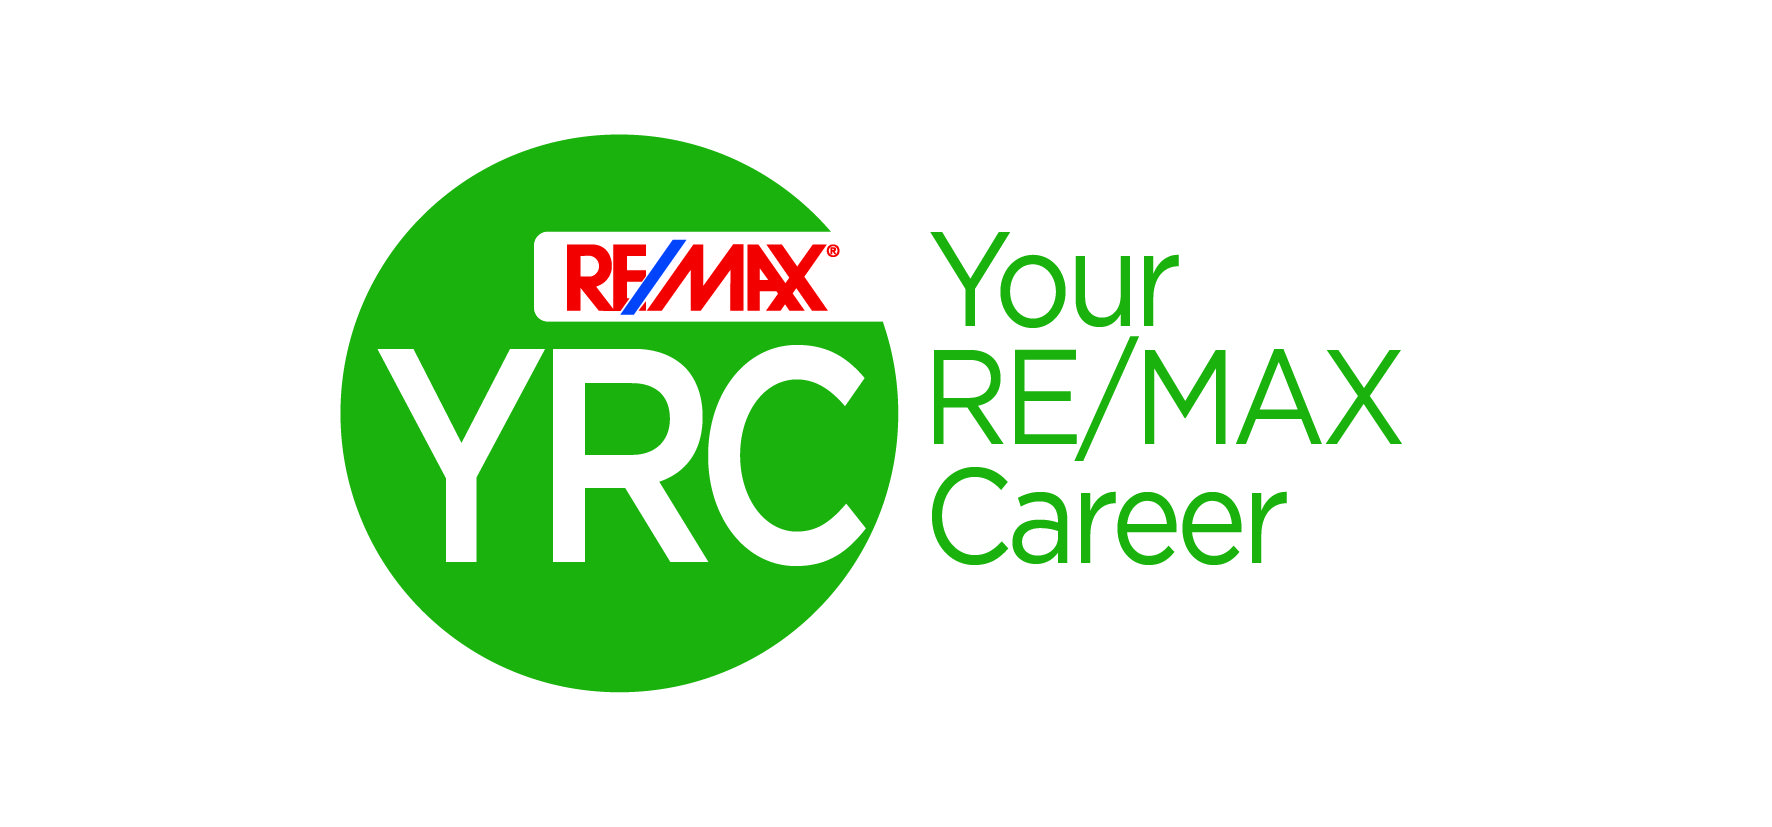 YOUR RE/MAX CAREER - NAPOLI